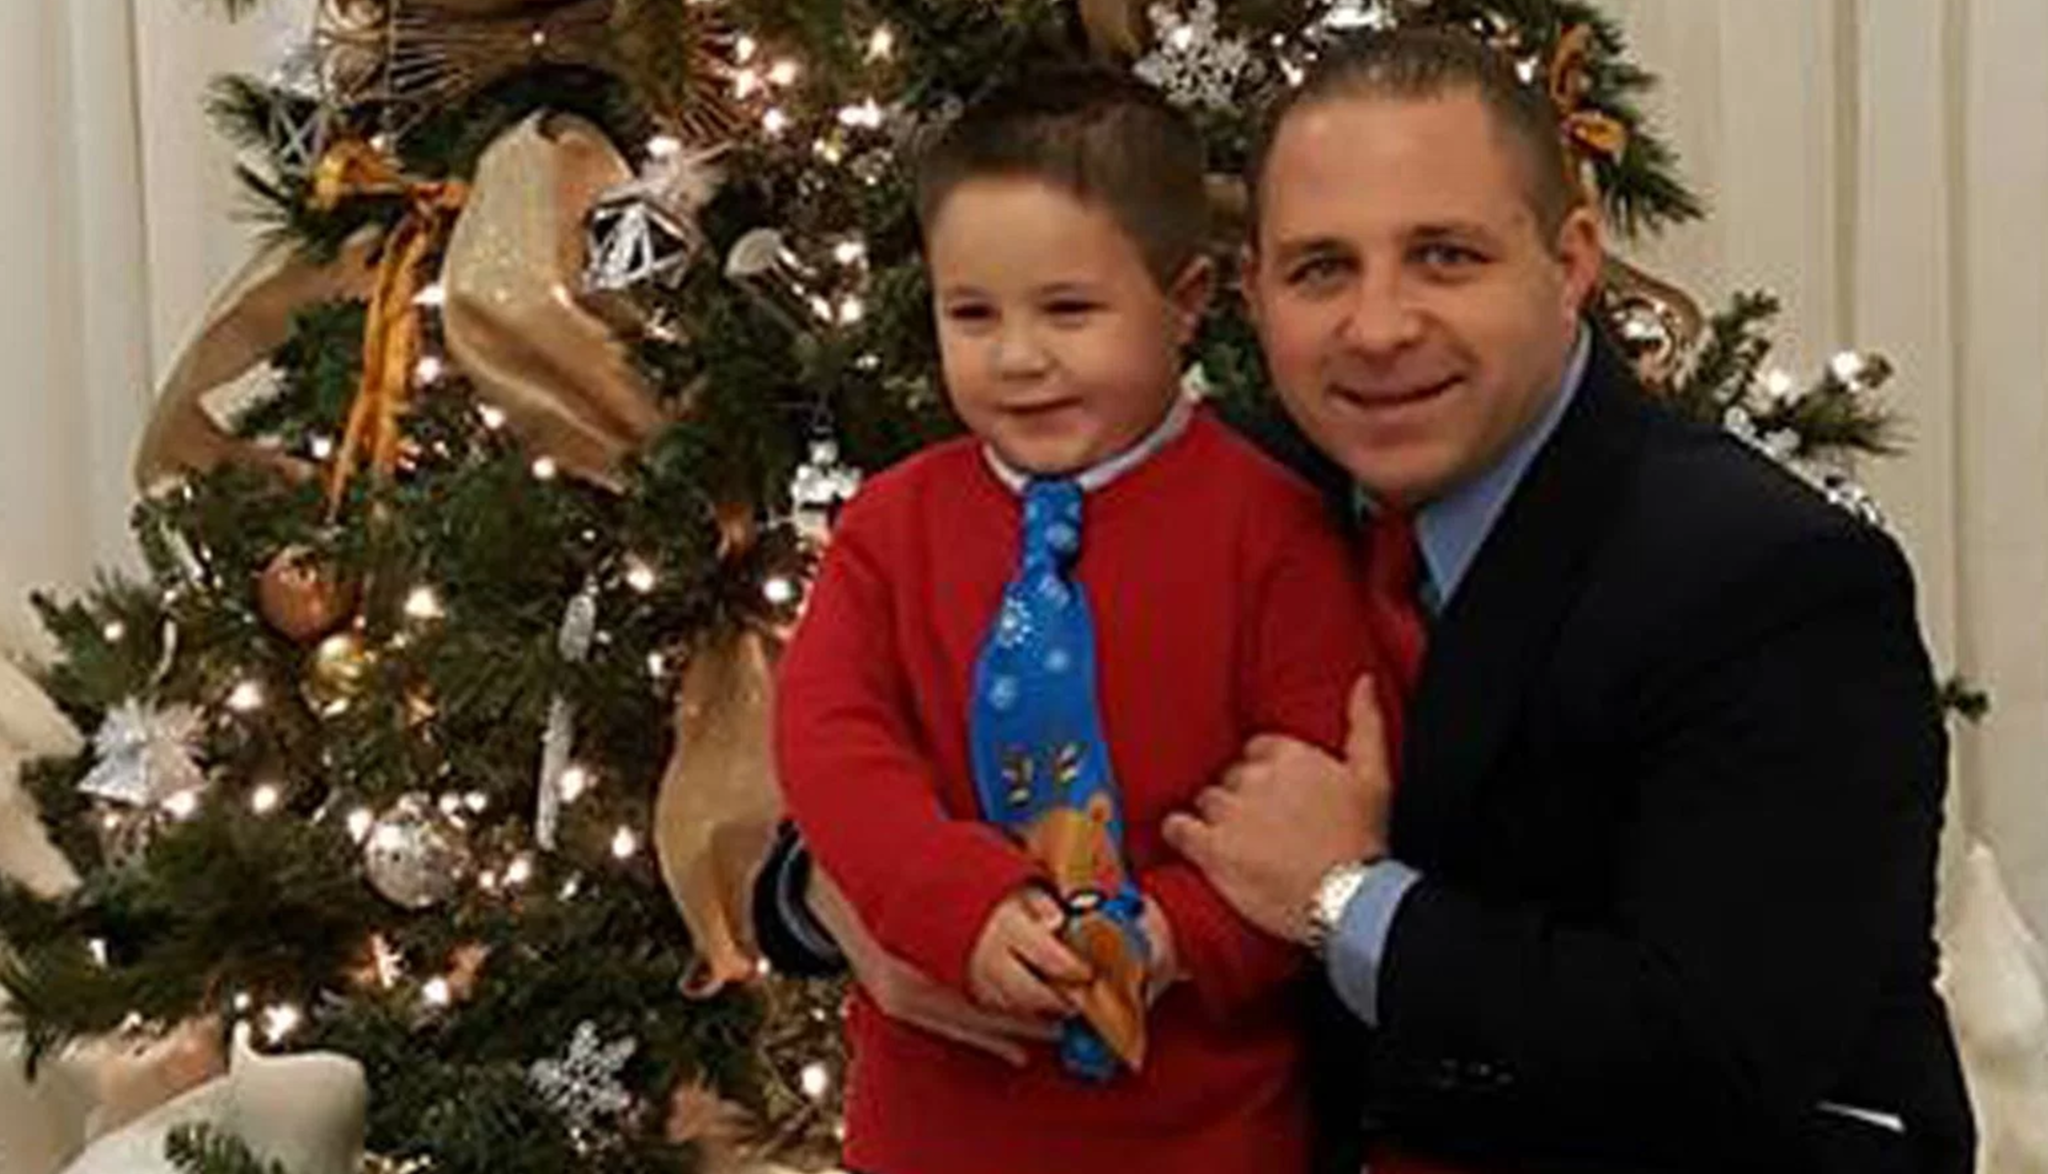 Aramazd Andressian Sr. and his son are seen in a family photo.